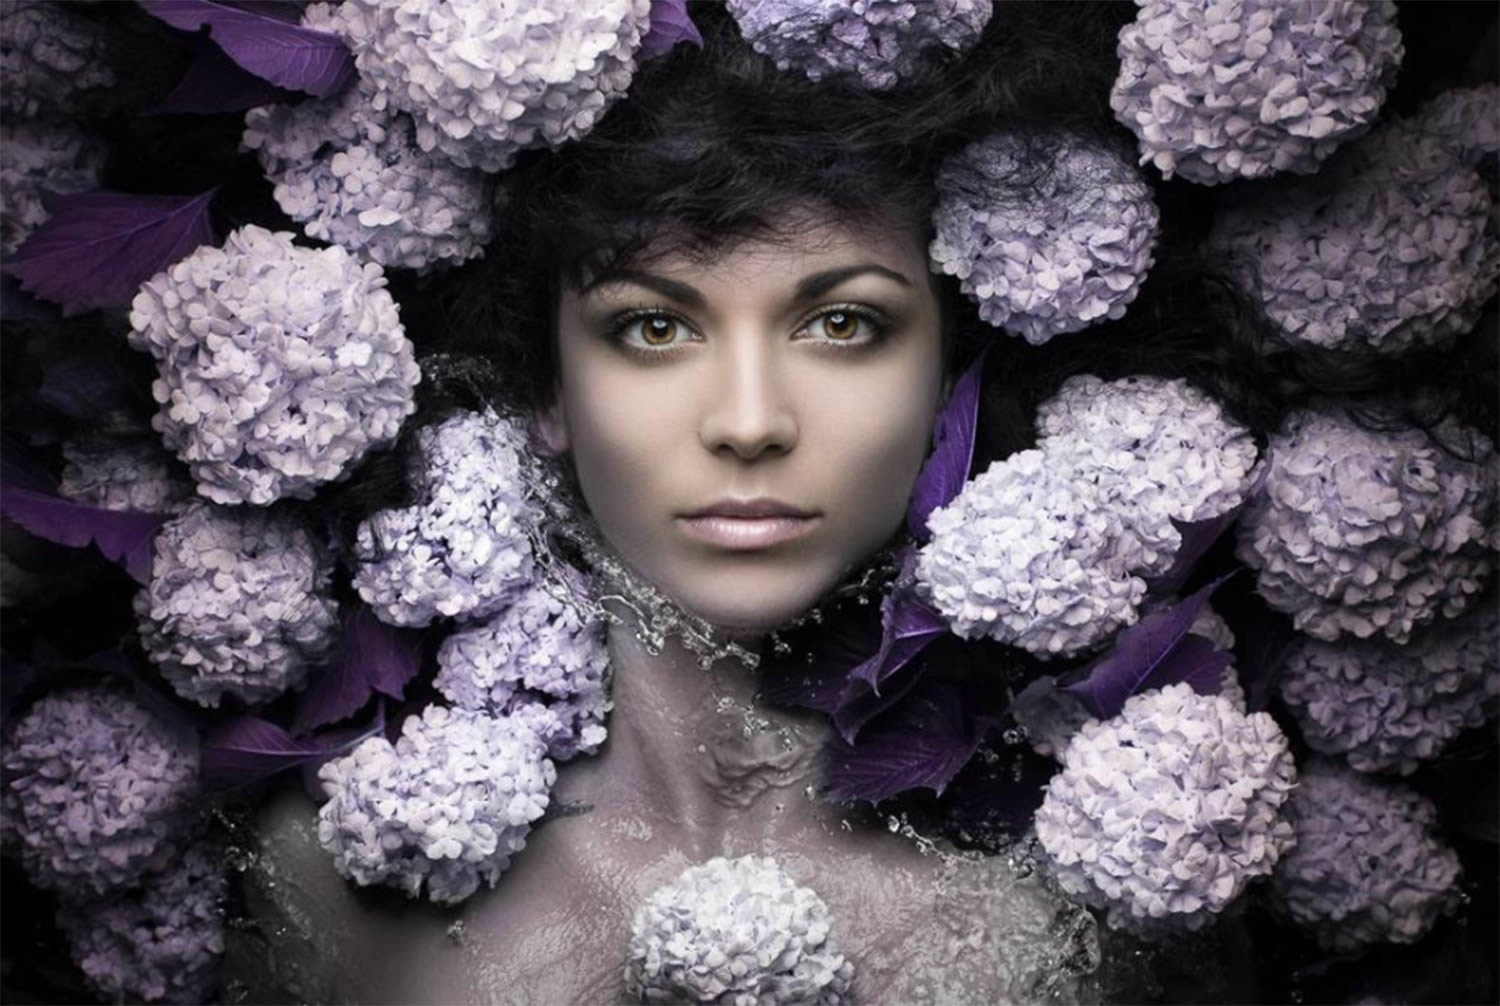 purple flowers around face, portrait by evgeni kolesnik